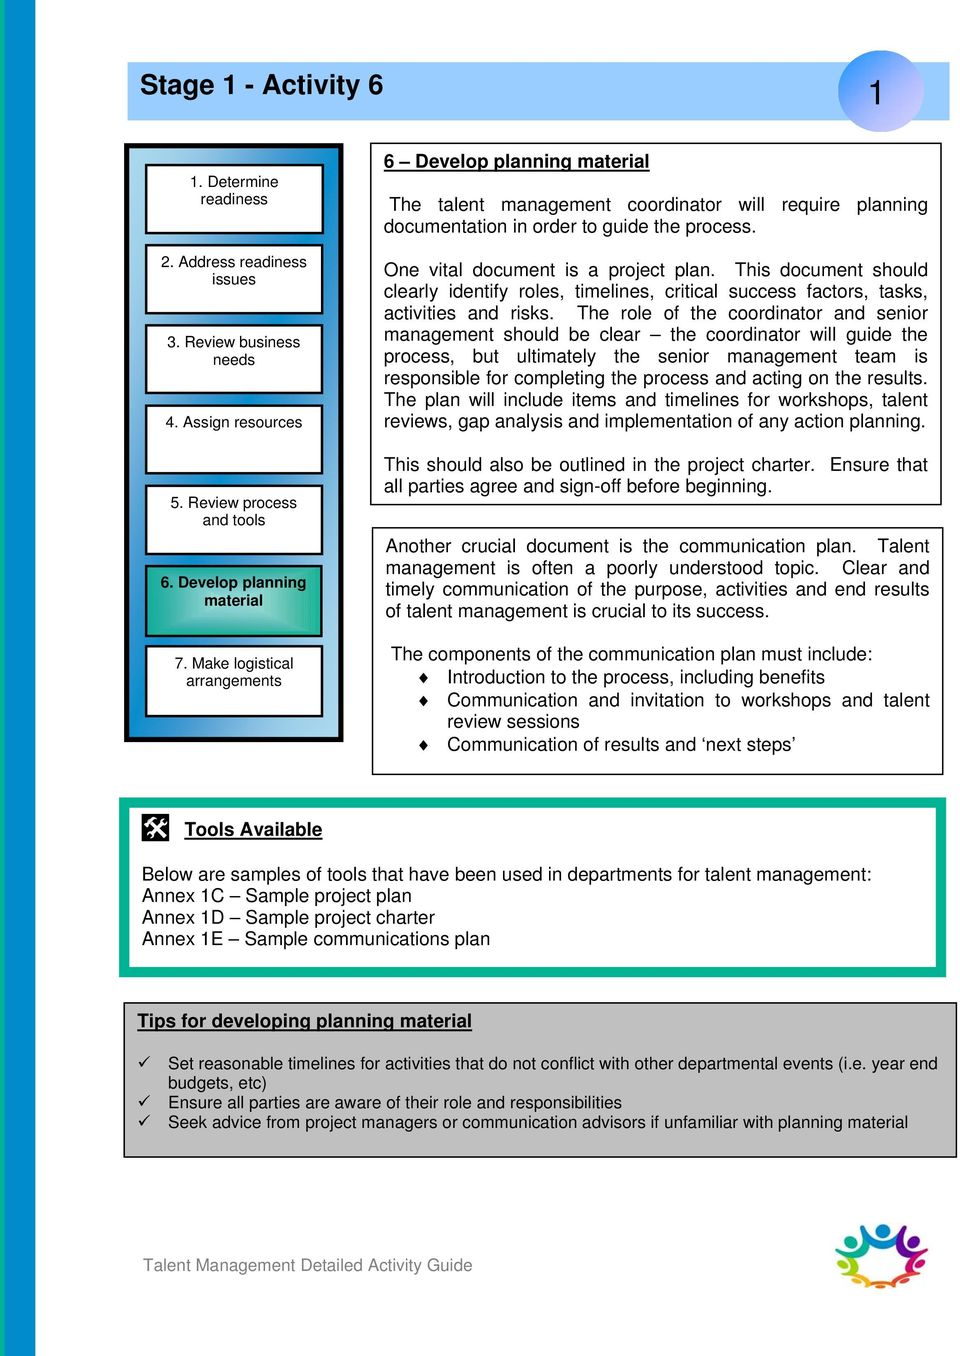 This document should clearly identify roles, timelines, critical success factors, tasks, activities and risks.